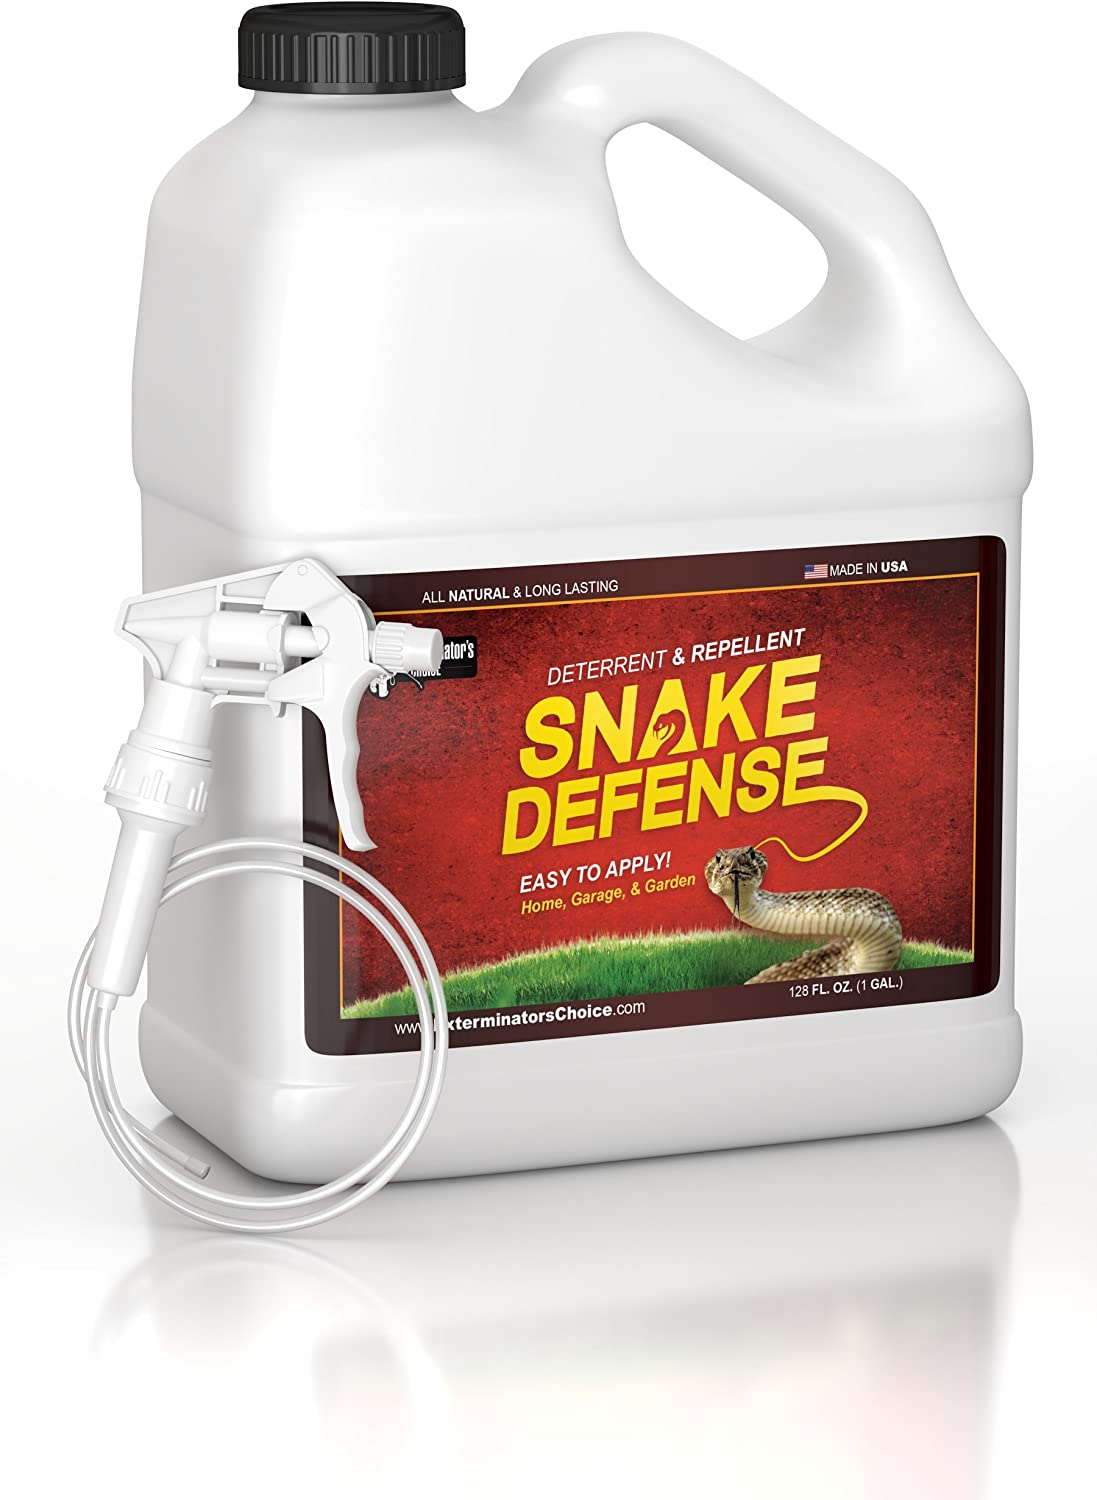 Snake Defense Natural Snake Repellent - Effective and Safe Spray one Gallon with Remote sprayer for Easy to Use Application| For All Types of Snakes| non venomous and venomous